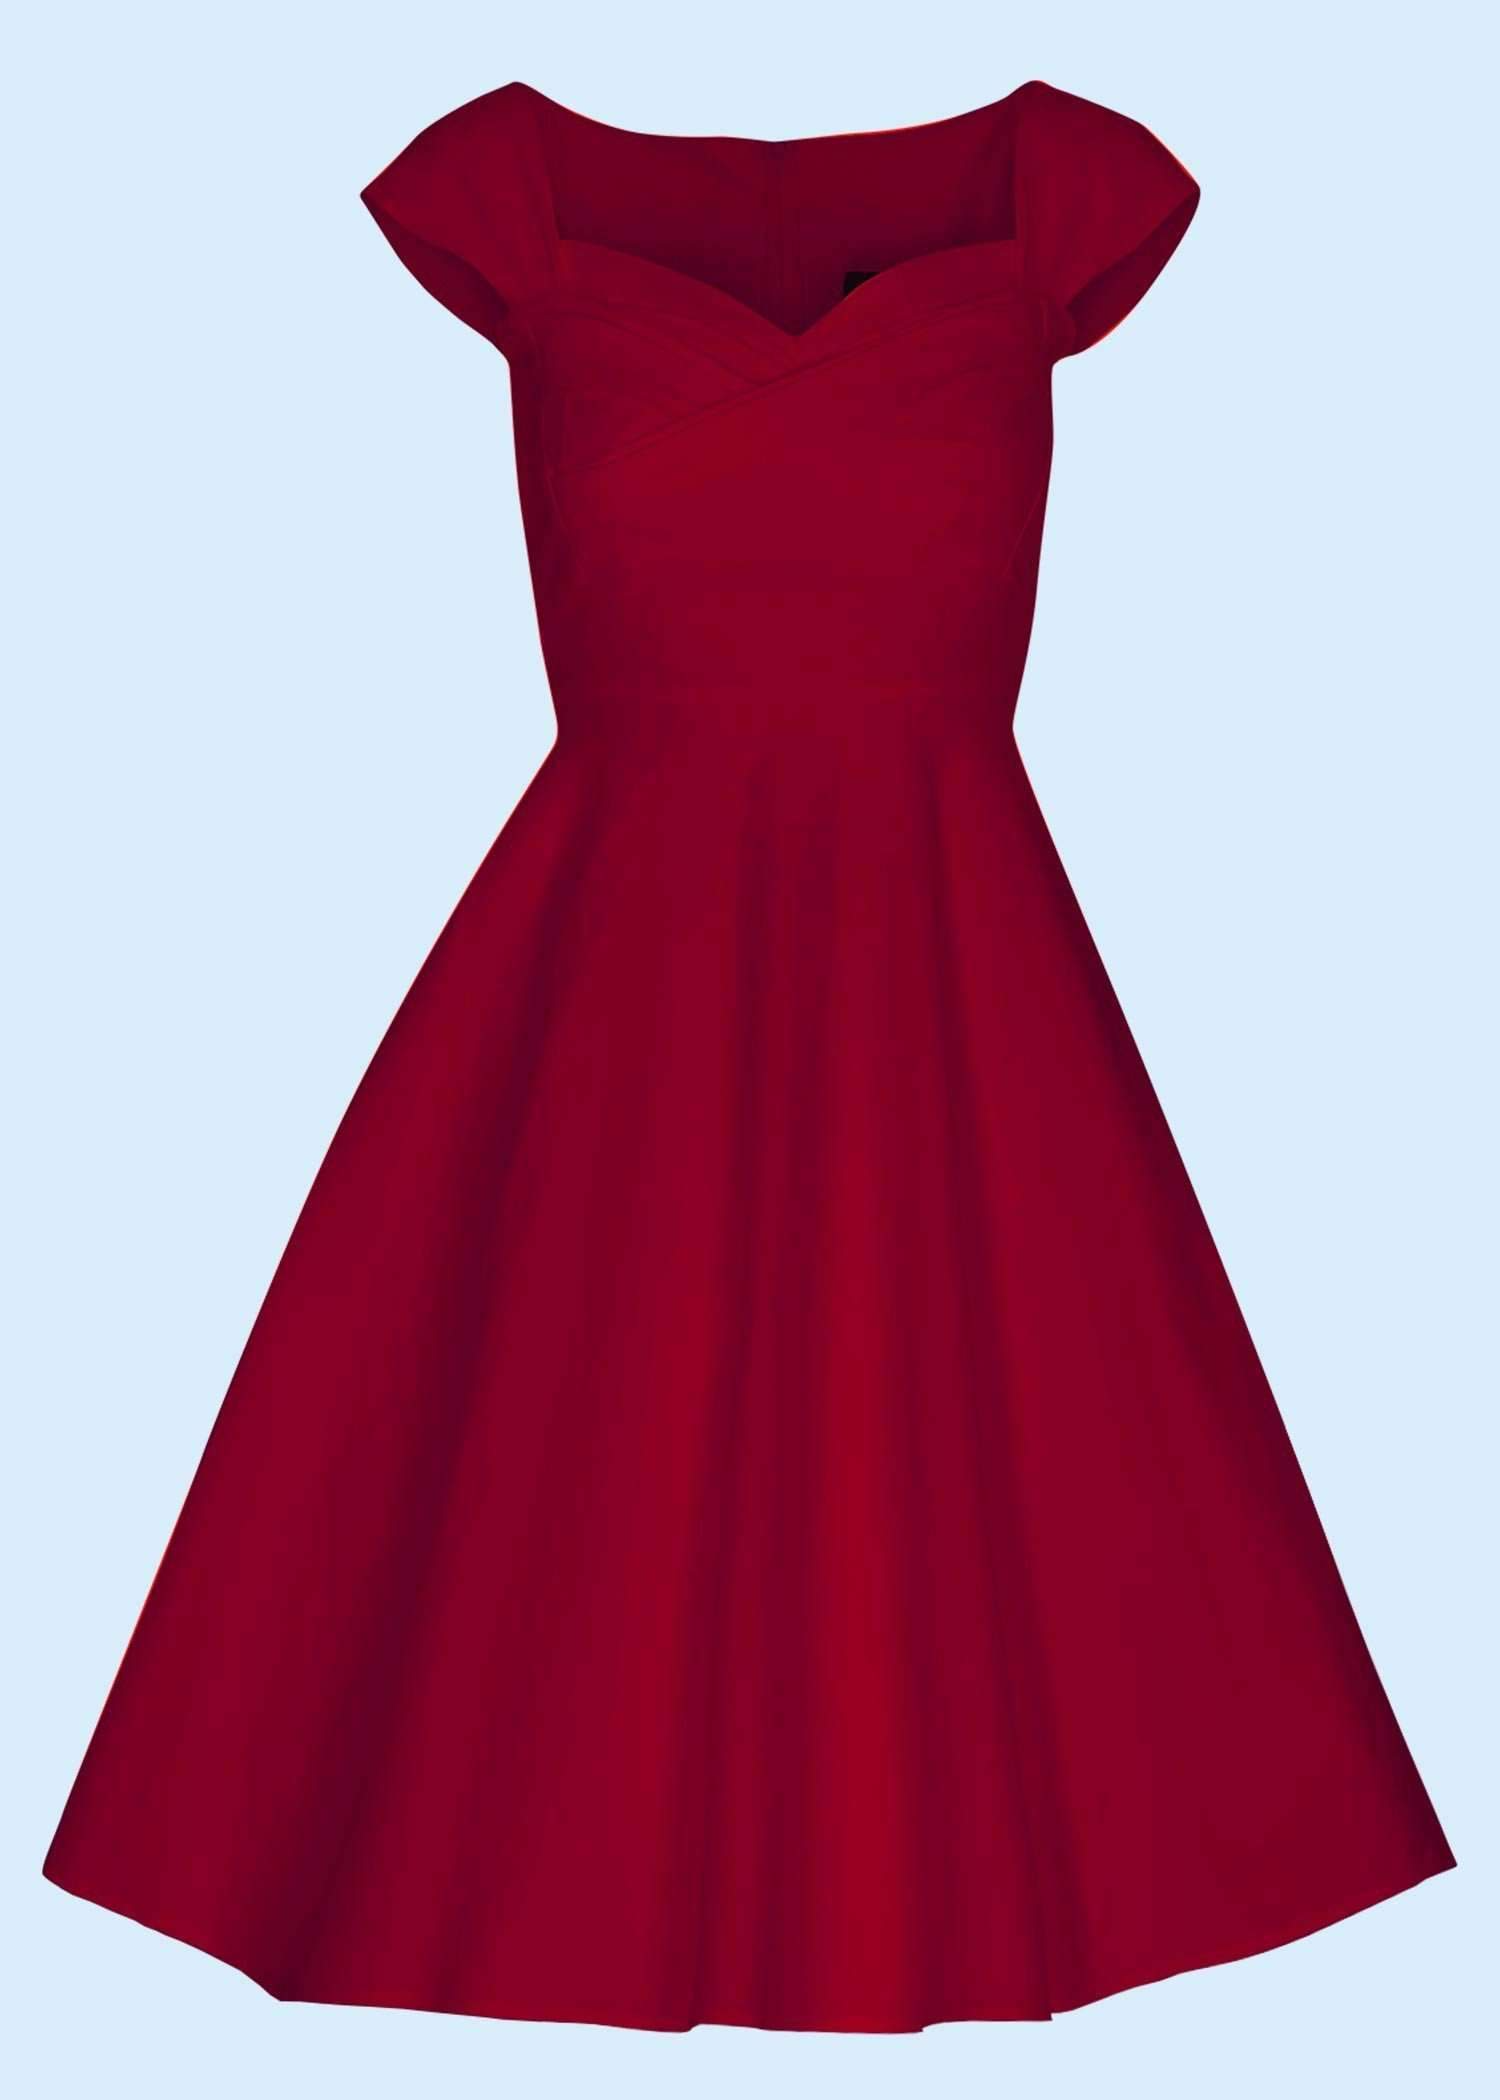 Swing dress in red, perfect for valentines